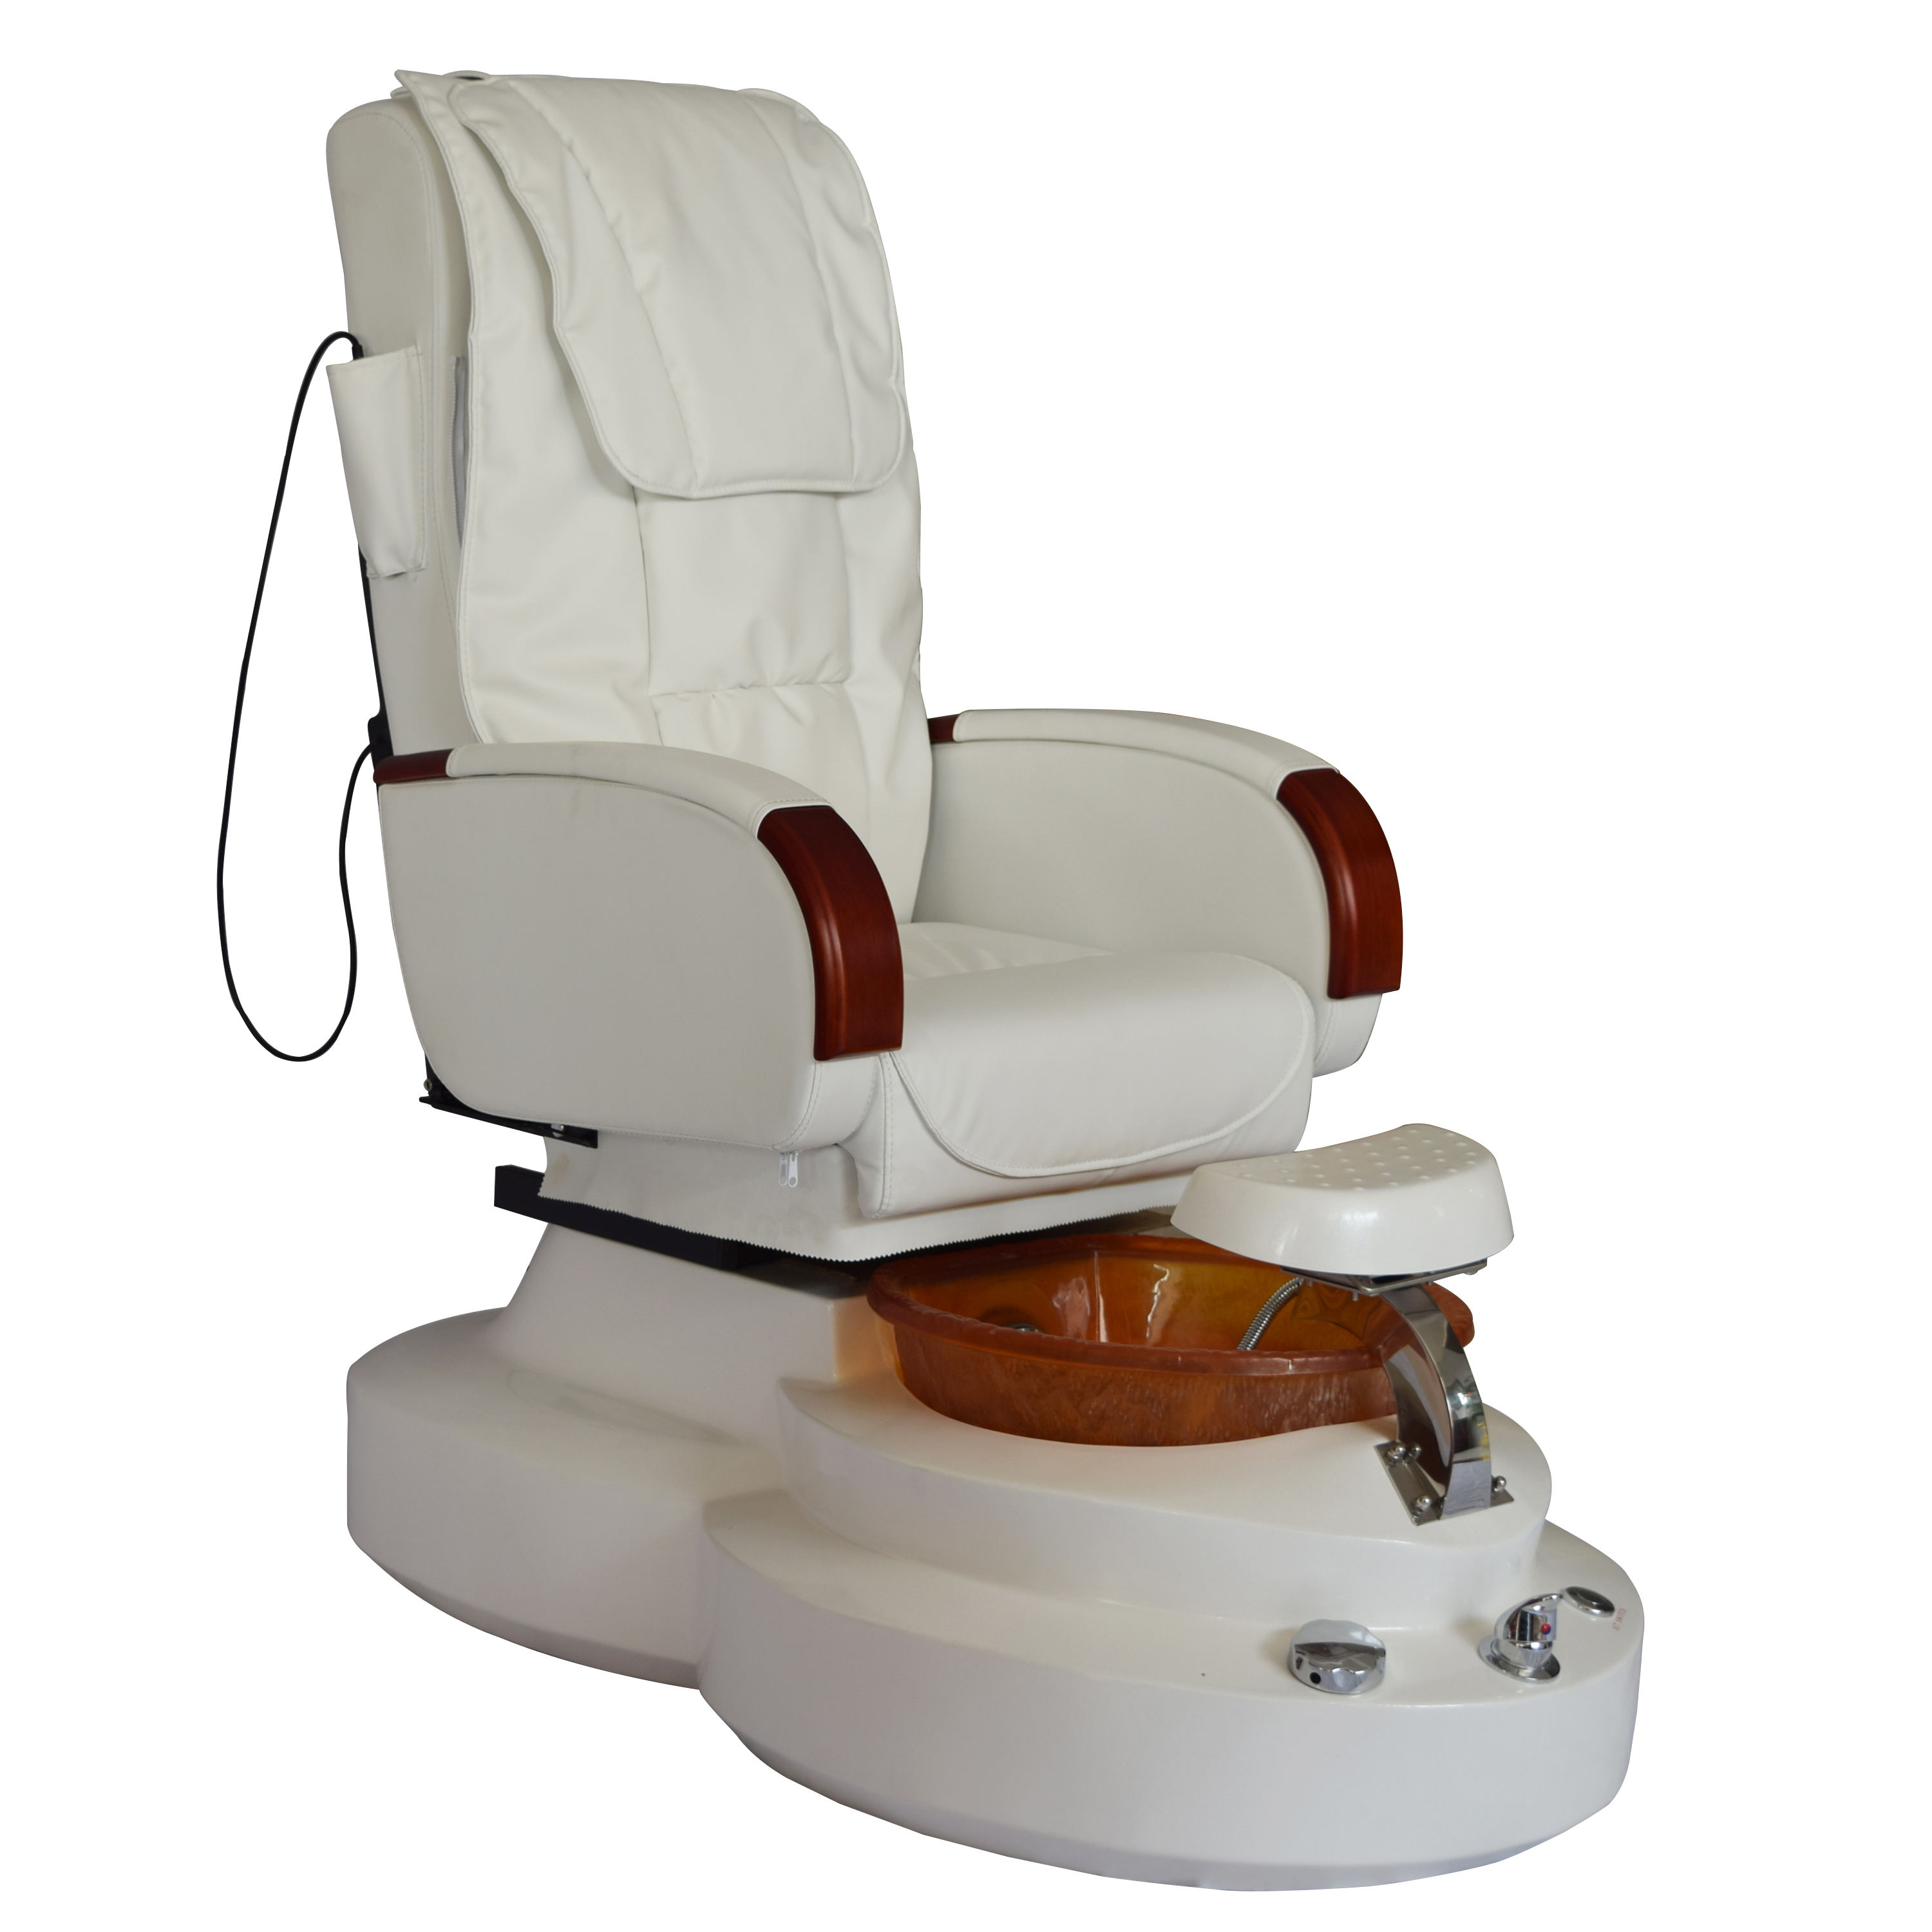 2021 new design pedicure spa chair hot model luxury for nail salon